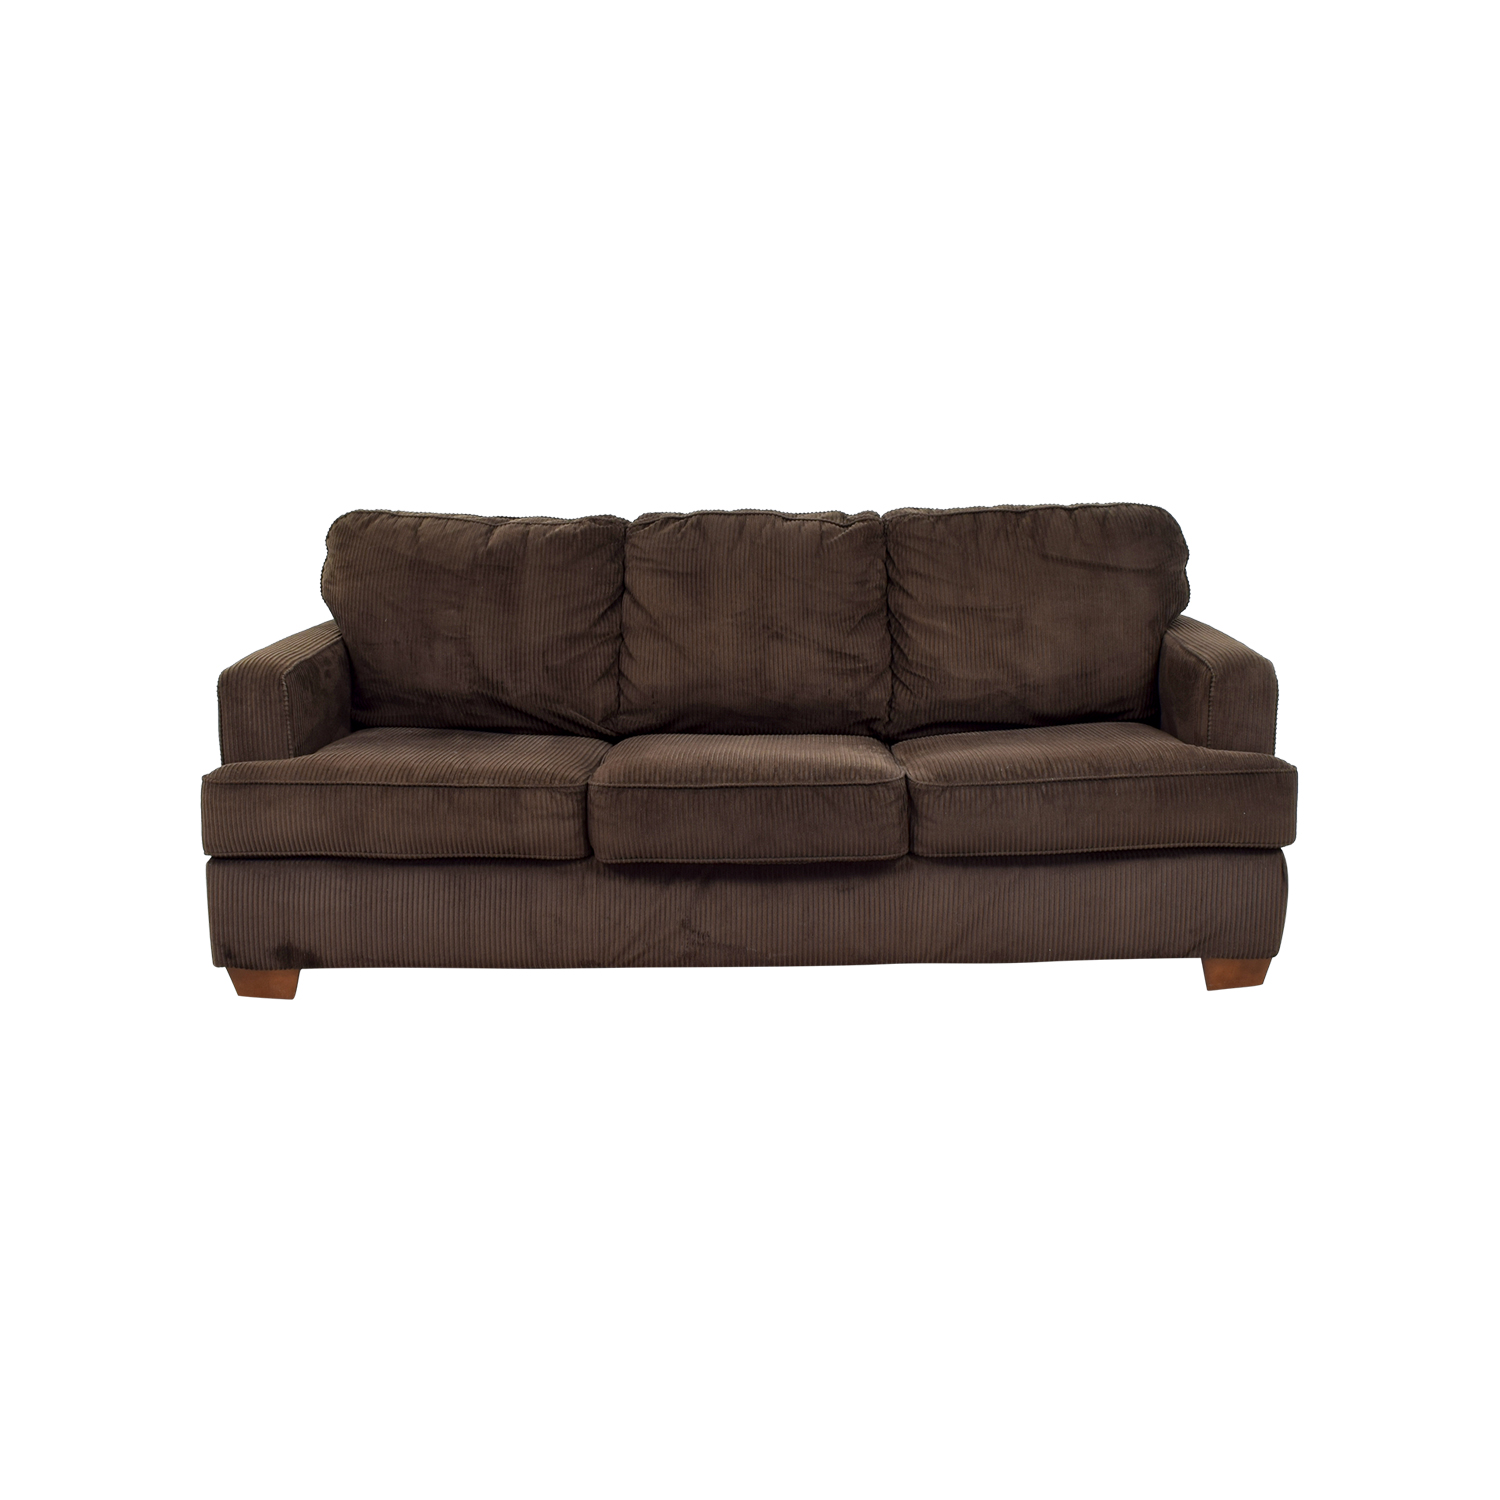 Chocolate Corduroy Sofa 89 Off Atmore Chocolate Corduroy Three Cushion Sofa Sofas